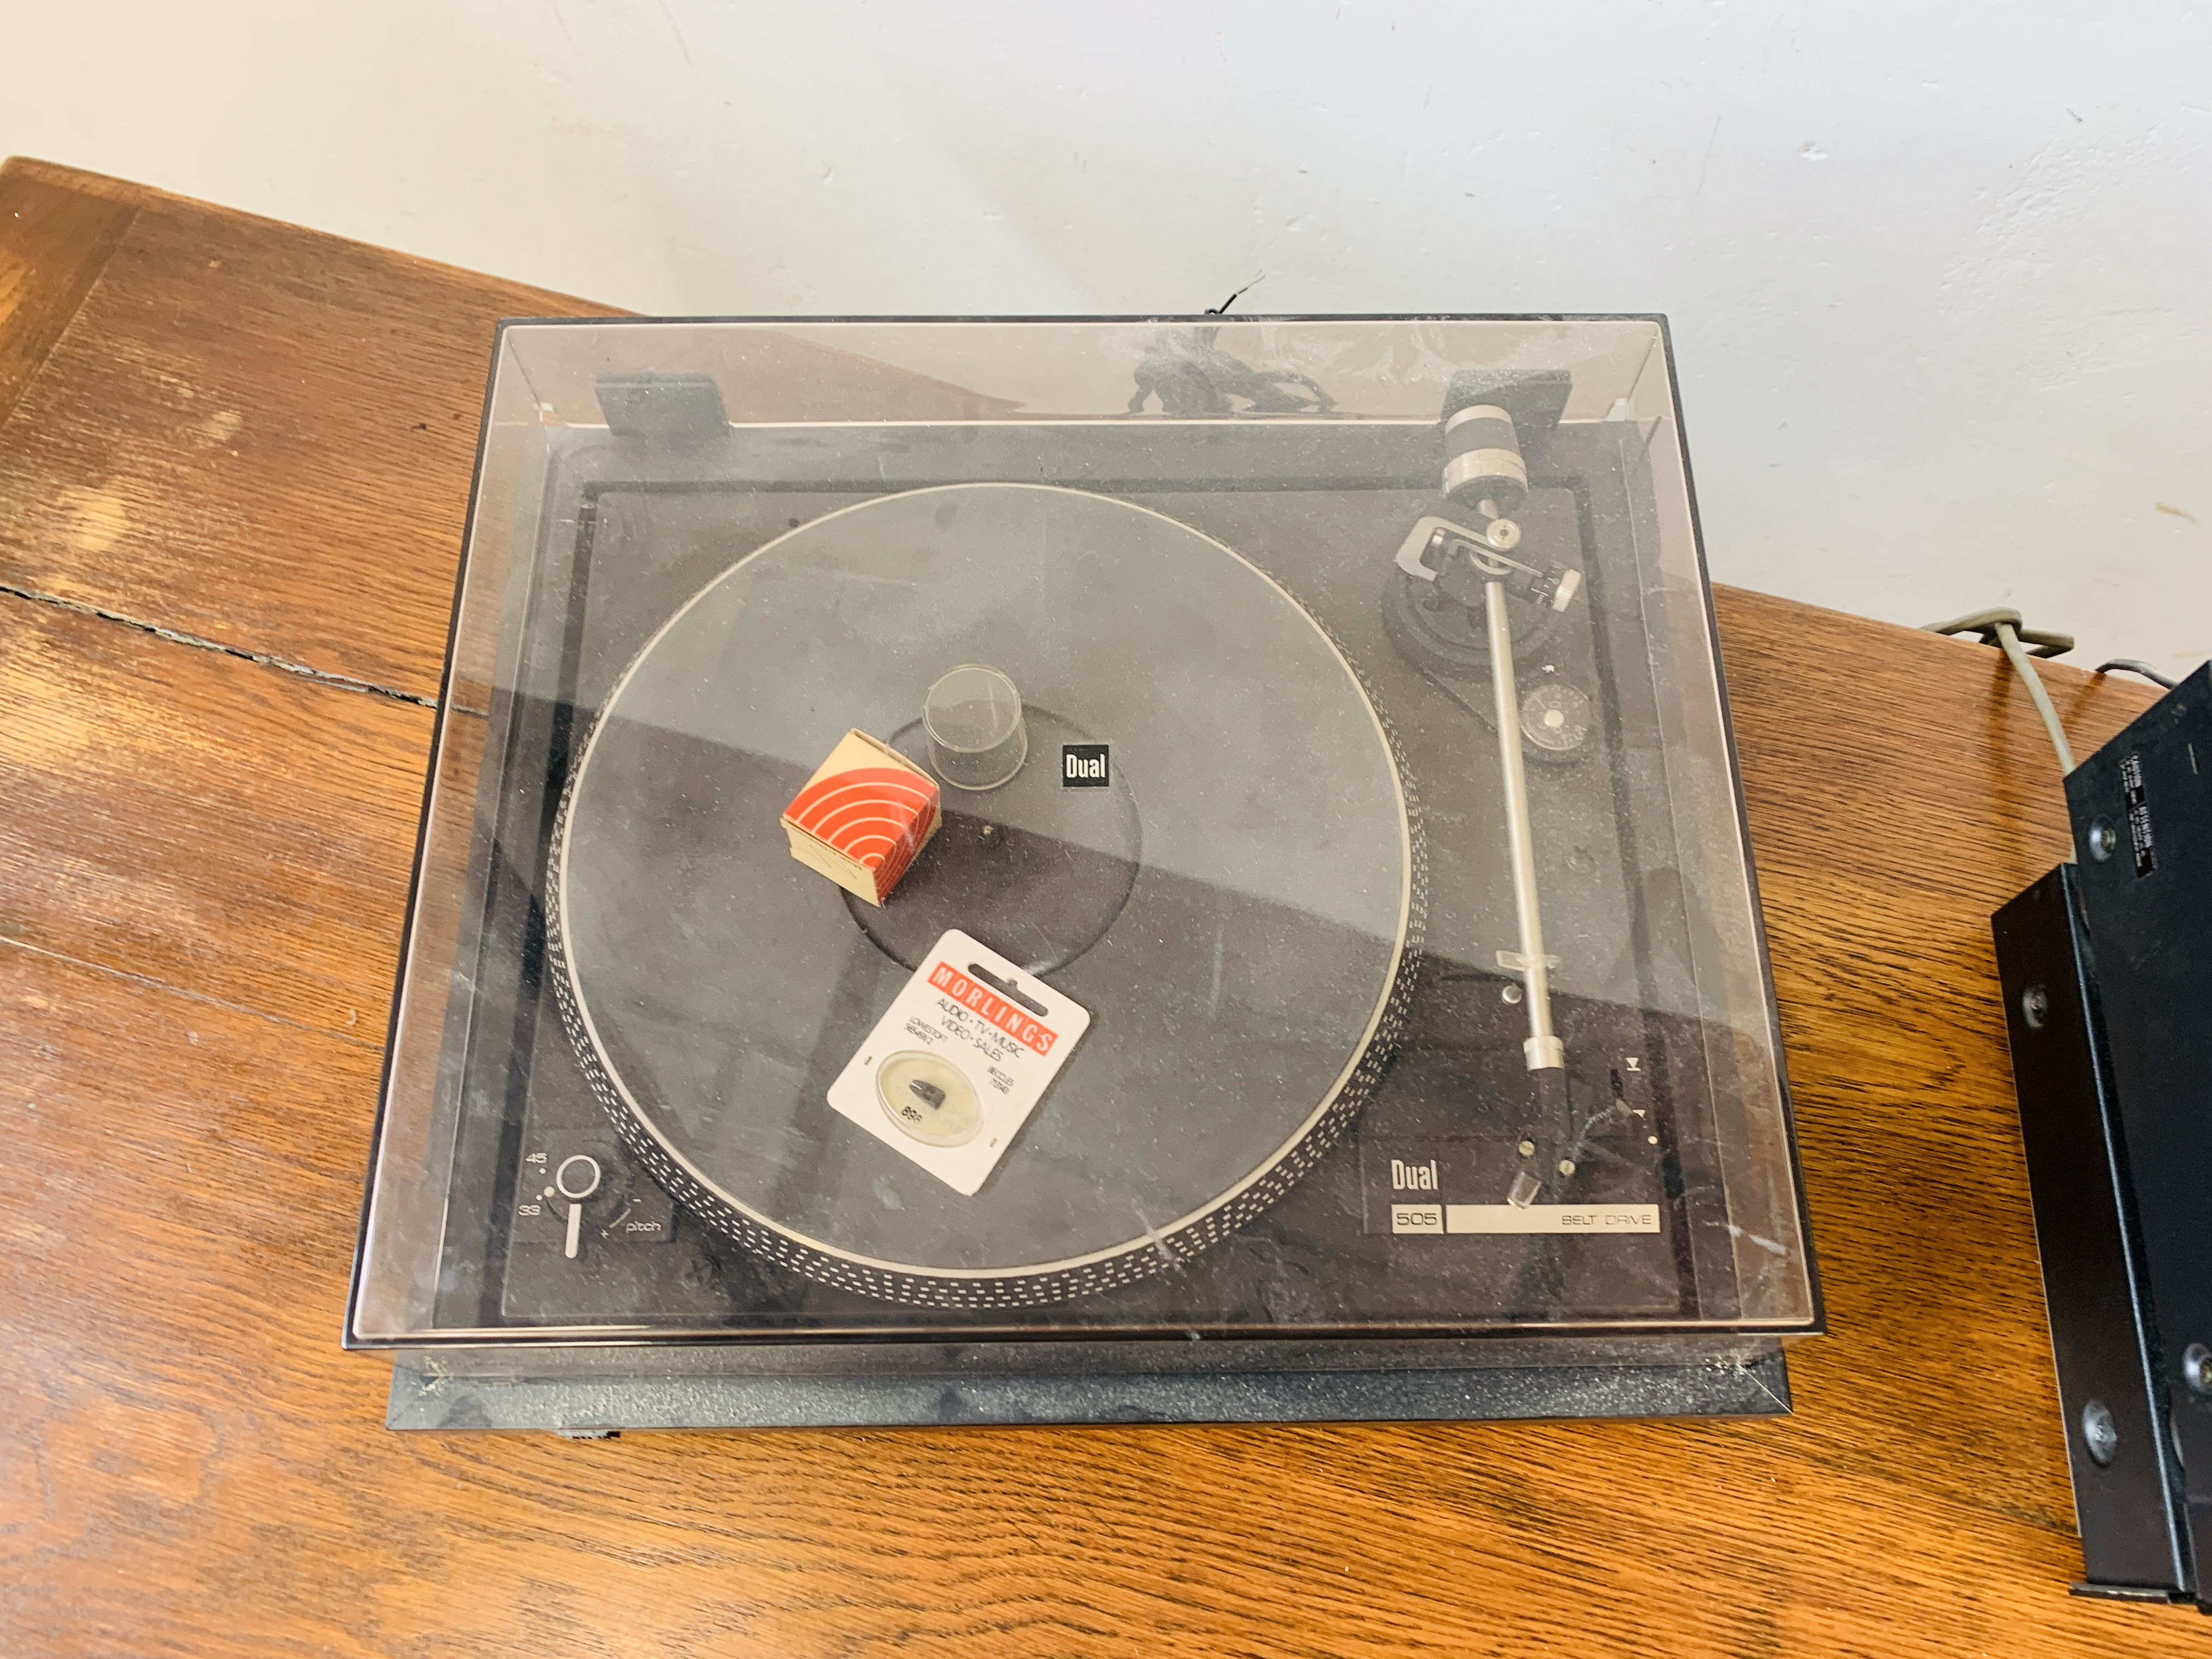 DUAL 505 BELT DRIVE TURNTABLE, - Image 3 of 7